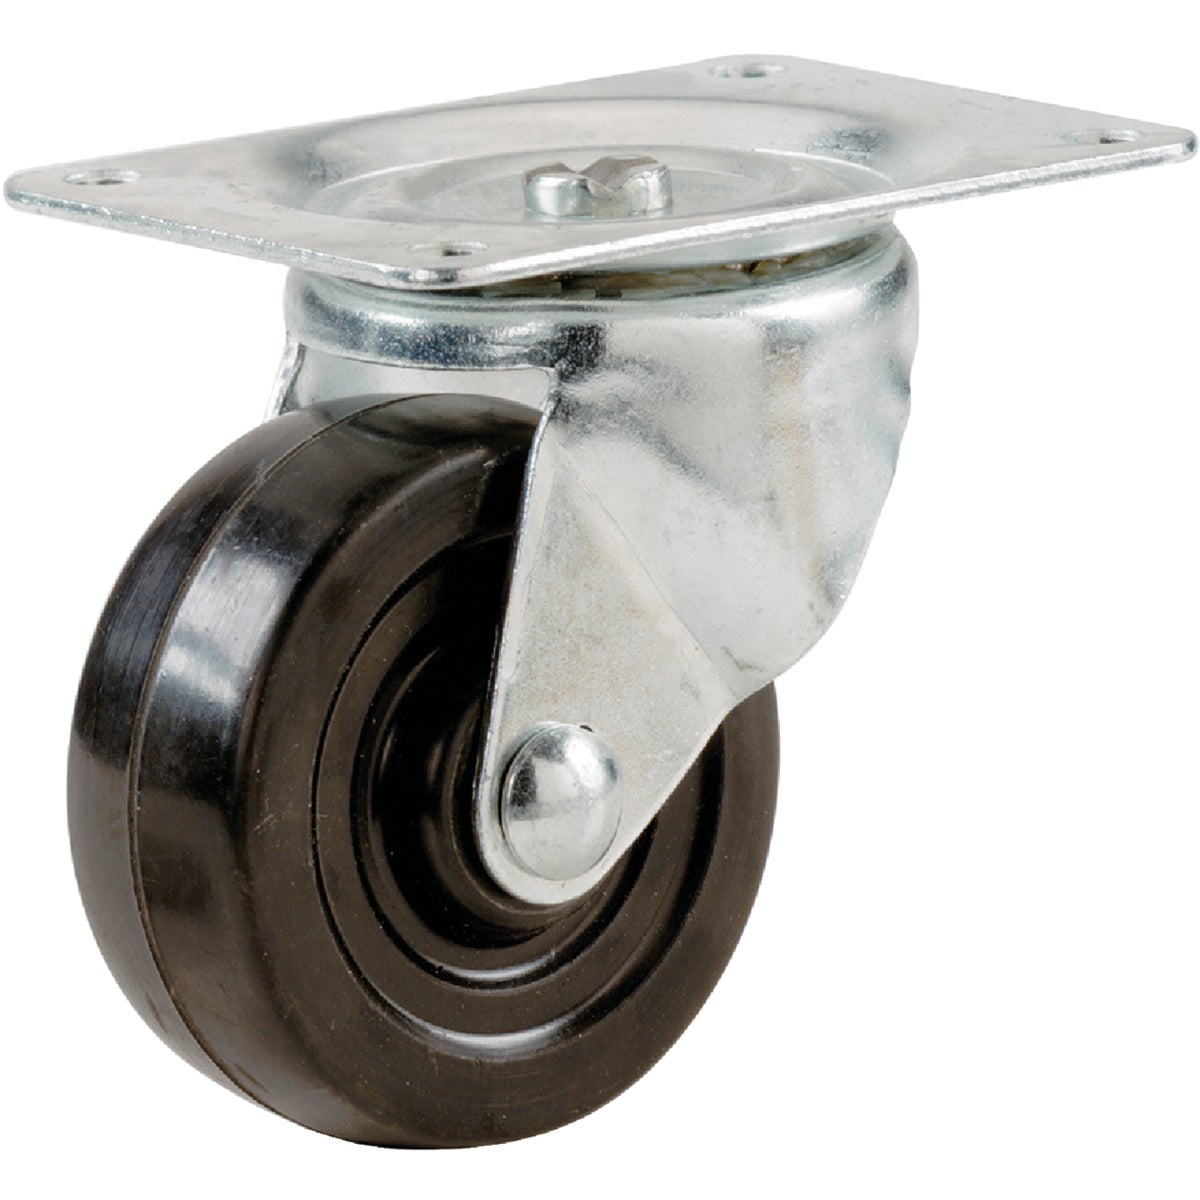 2-1/2 RBBR SWIVEL CASTER - 9478 by Shepherd Hardware